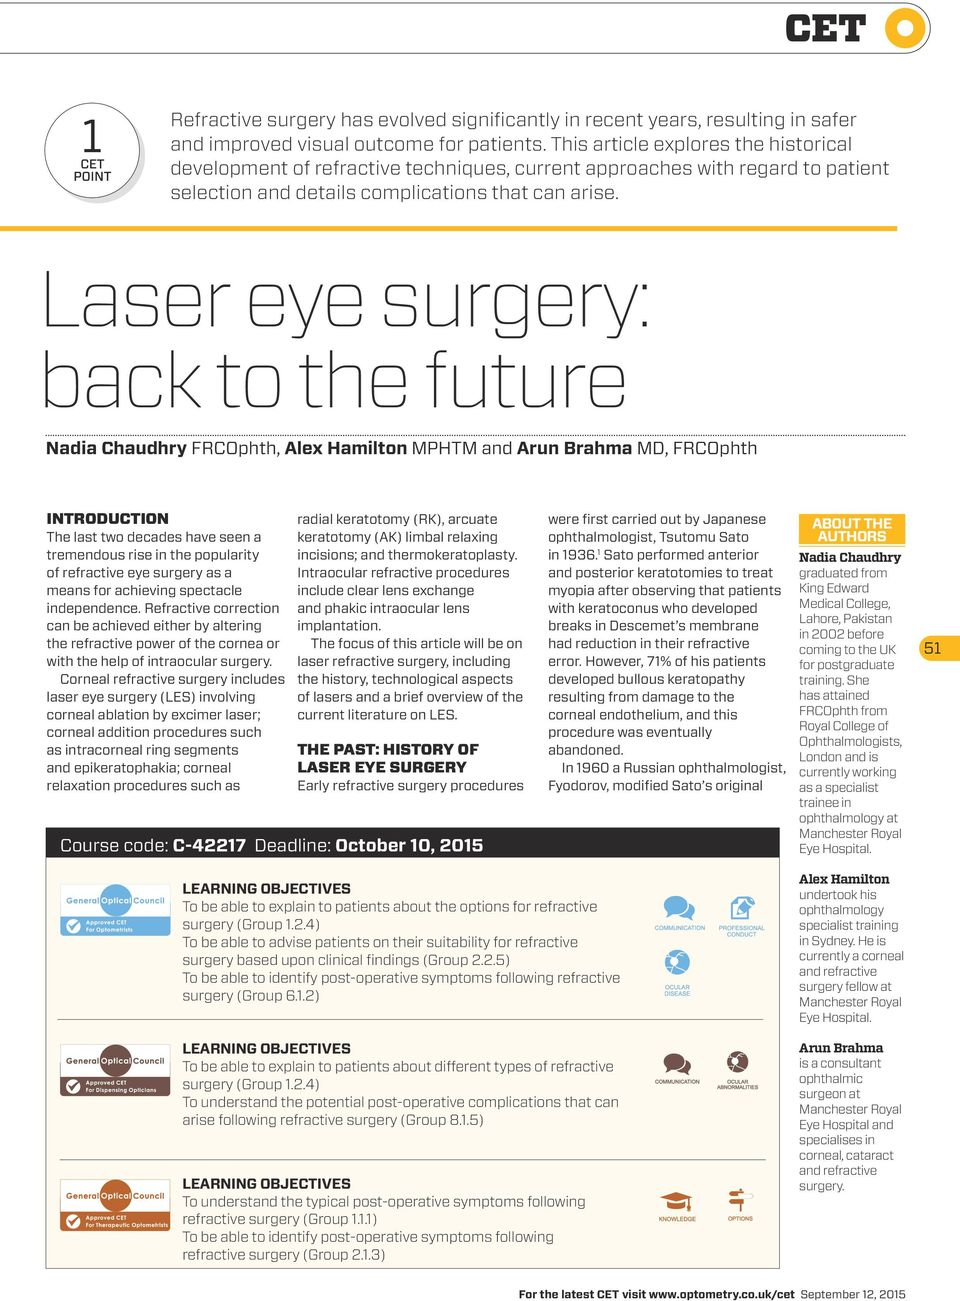 Laser eye surgery: back to the future Nadia Chaudhry FRCOphth, Alex Hamilton MPHTM and Arun Brahma MD, FRCOphth INTRODUCTION The last two decades have seen a tremendous rise in the popularity of